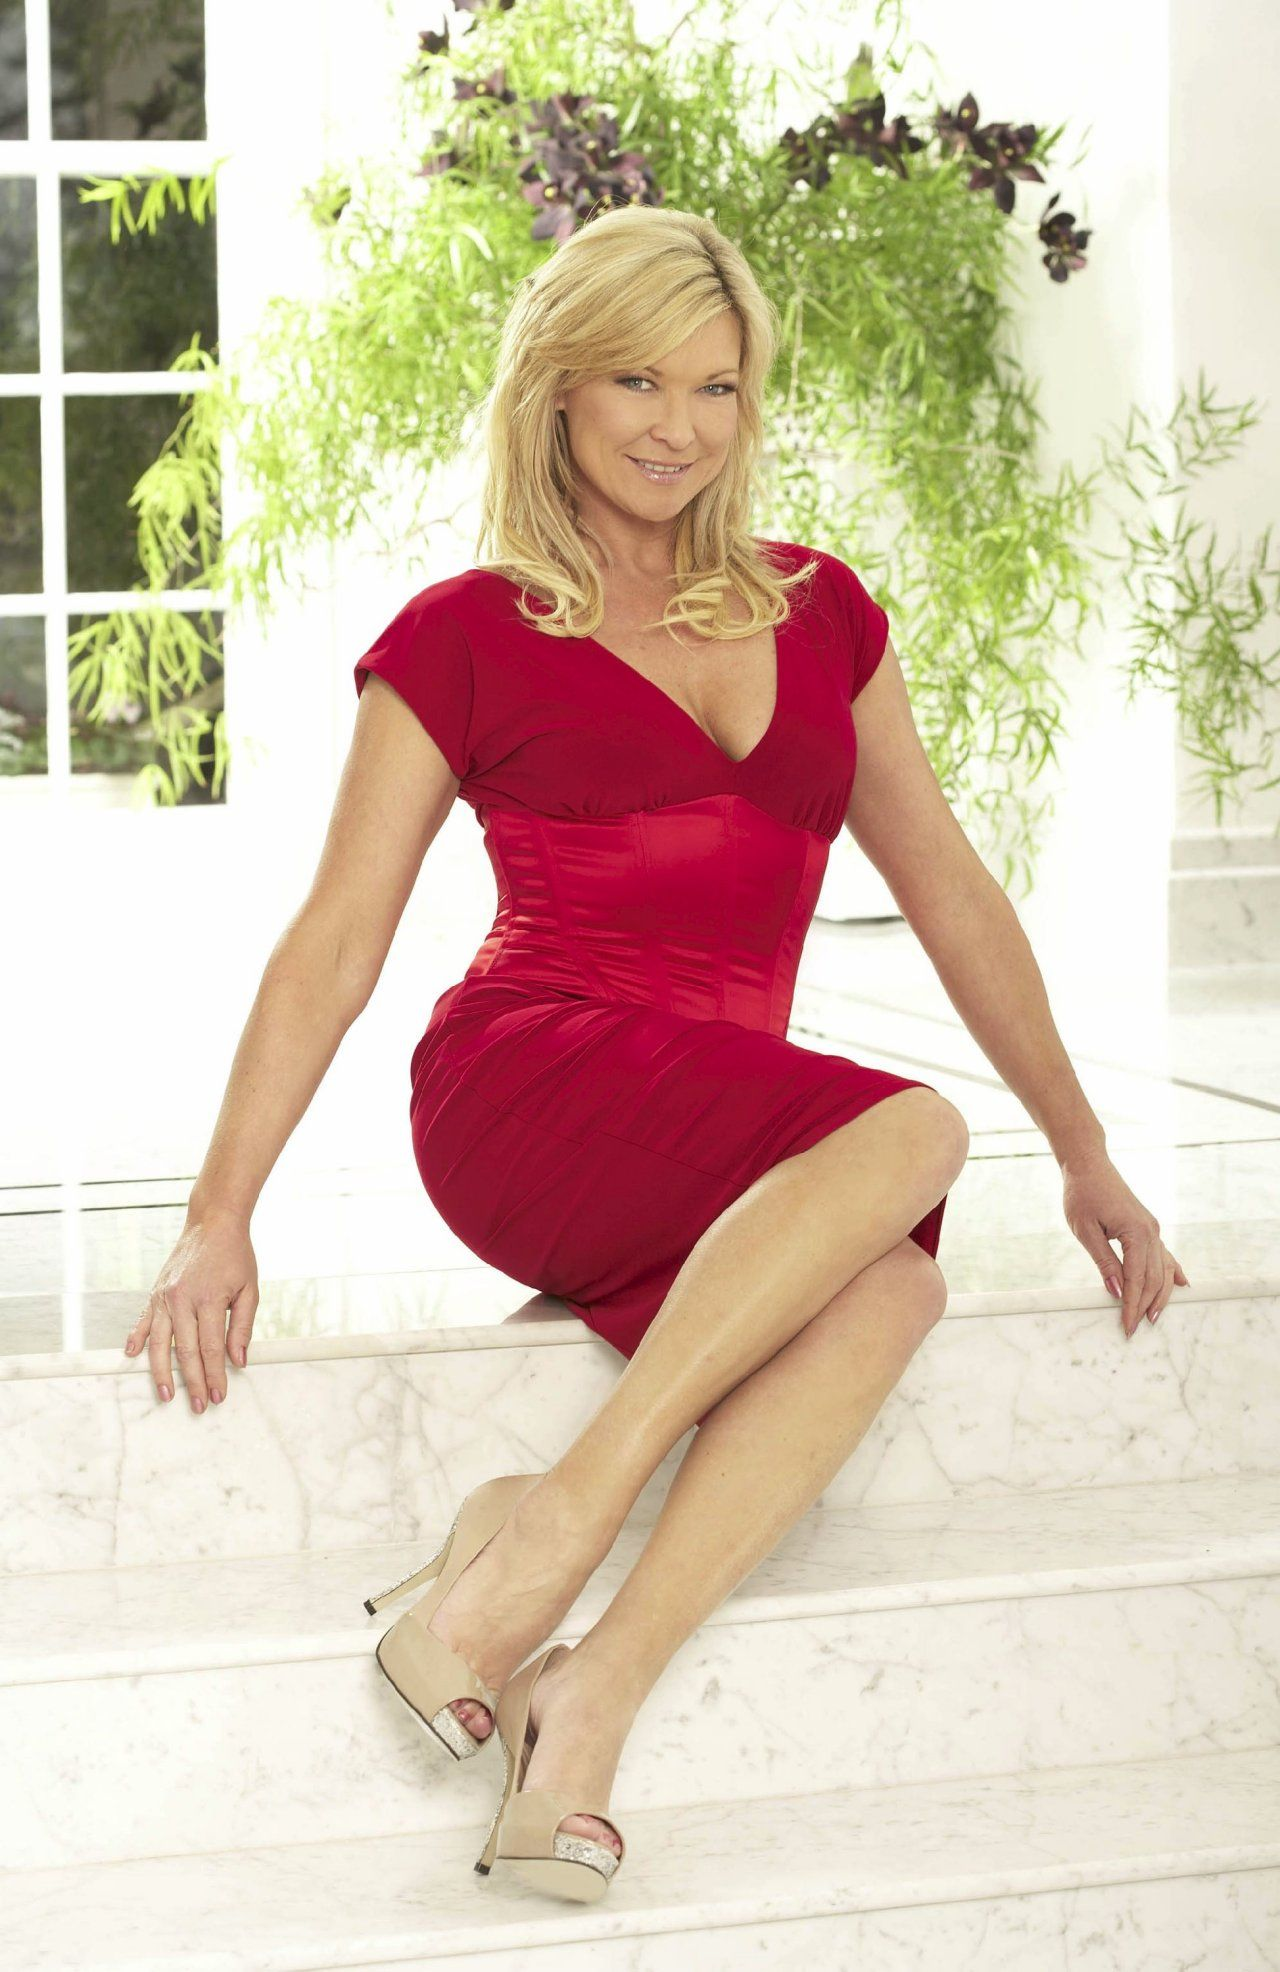 Claire King (born 1963)